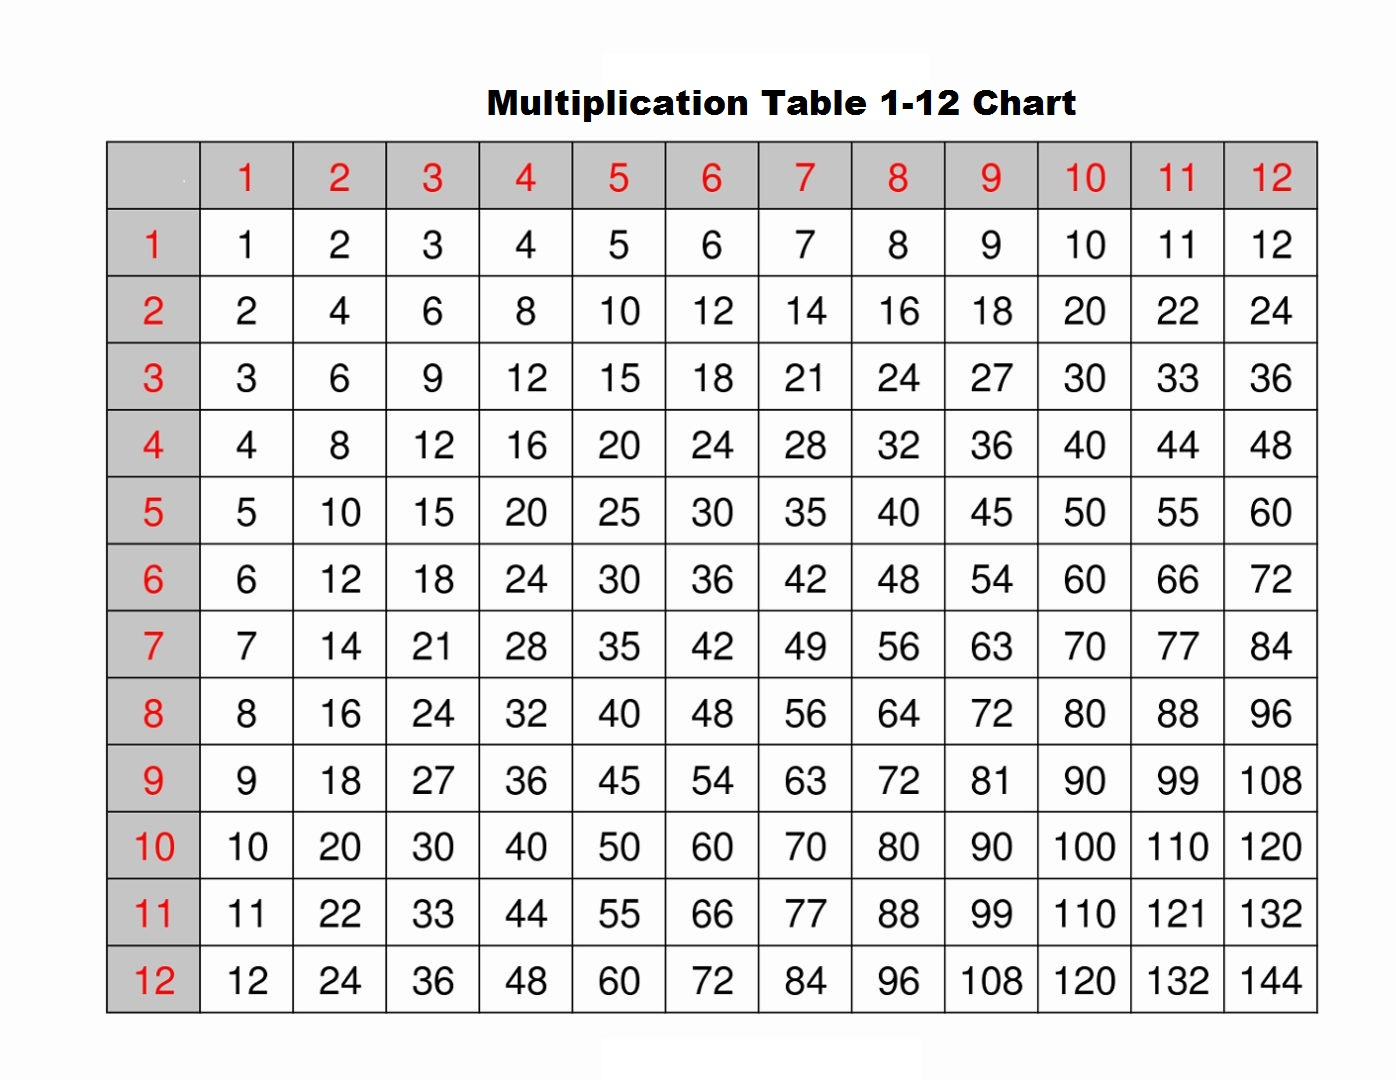 5+ Blank Multiplication Table 1-12 Printable Chart In Pdf